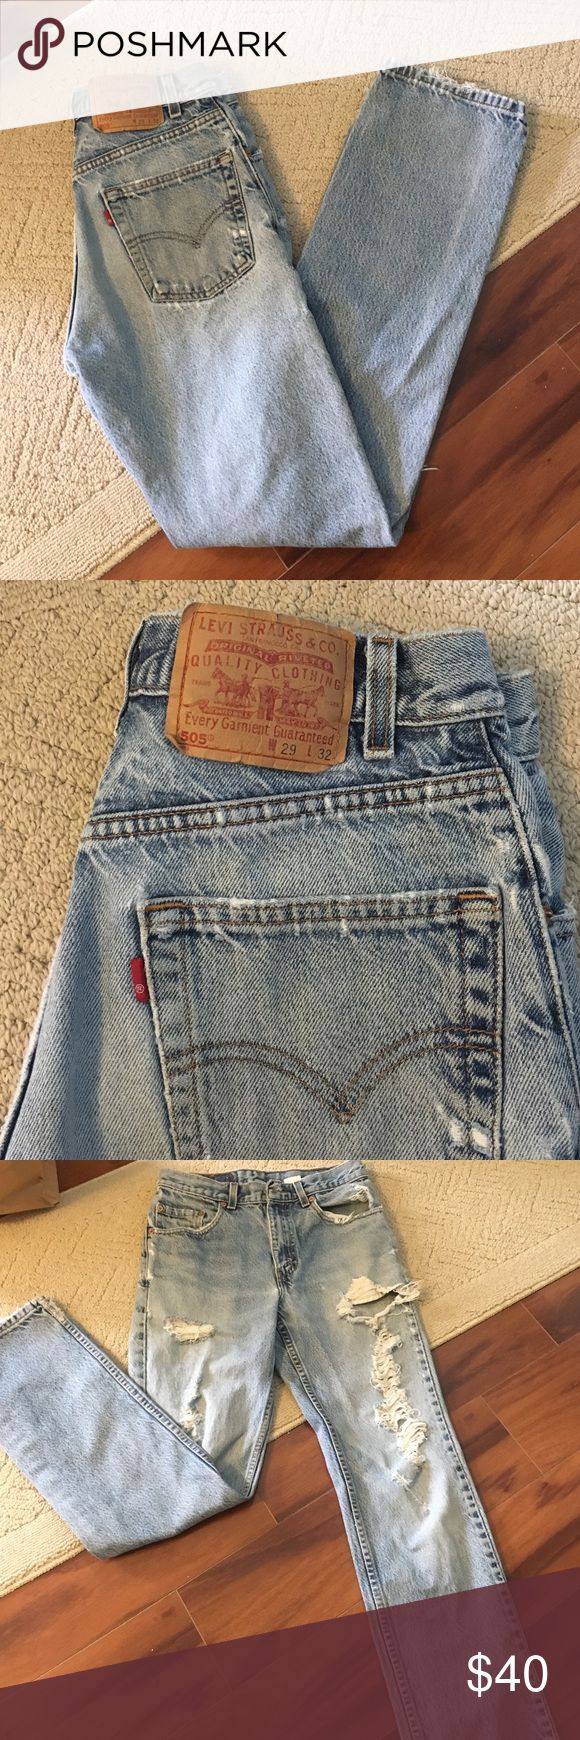 ⭐️️Vintage⭐️️ Levi's 505 distressed denim W29xL32 distressed denim Levi jeans. High wasted, I'm usually a 27 but these fit me perfectly. Hugs the butt ❤️️ last photo is a similar pair. Different destress Levi's Jeans Boyfriend